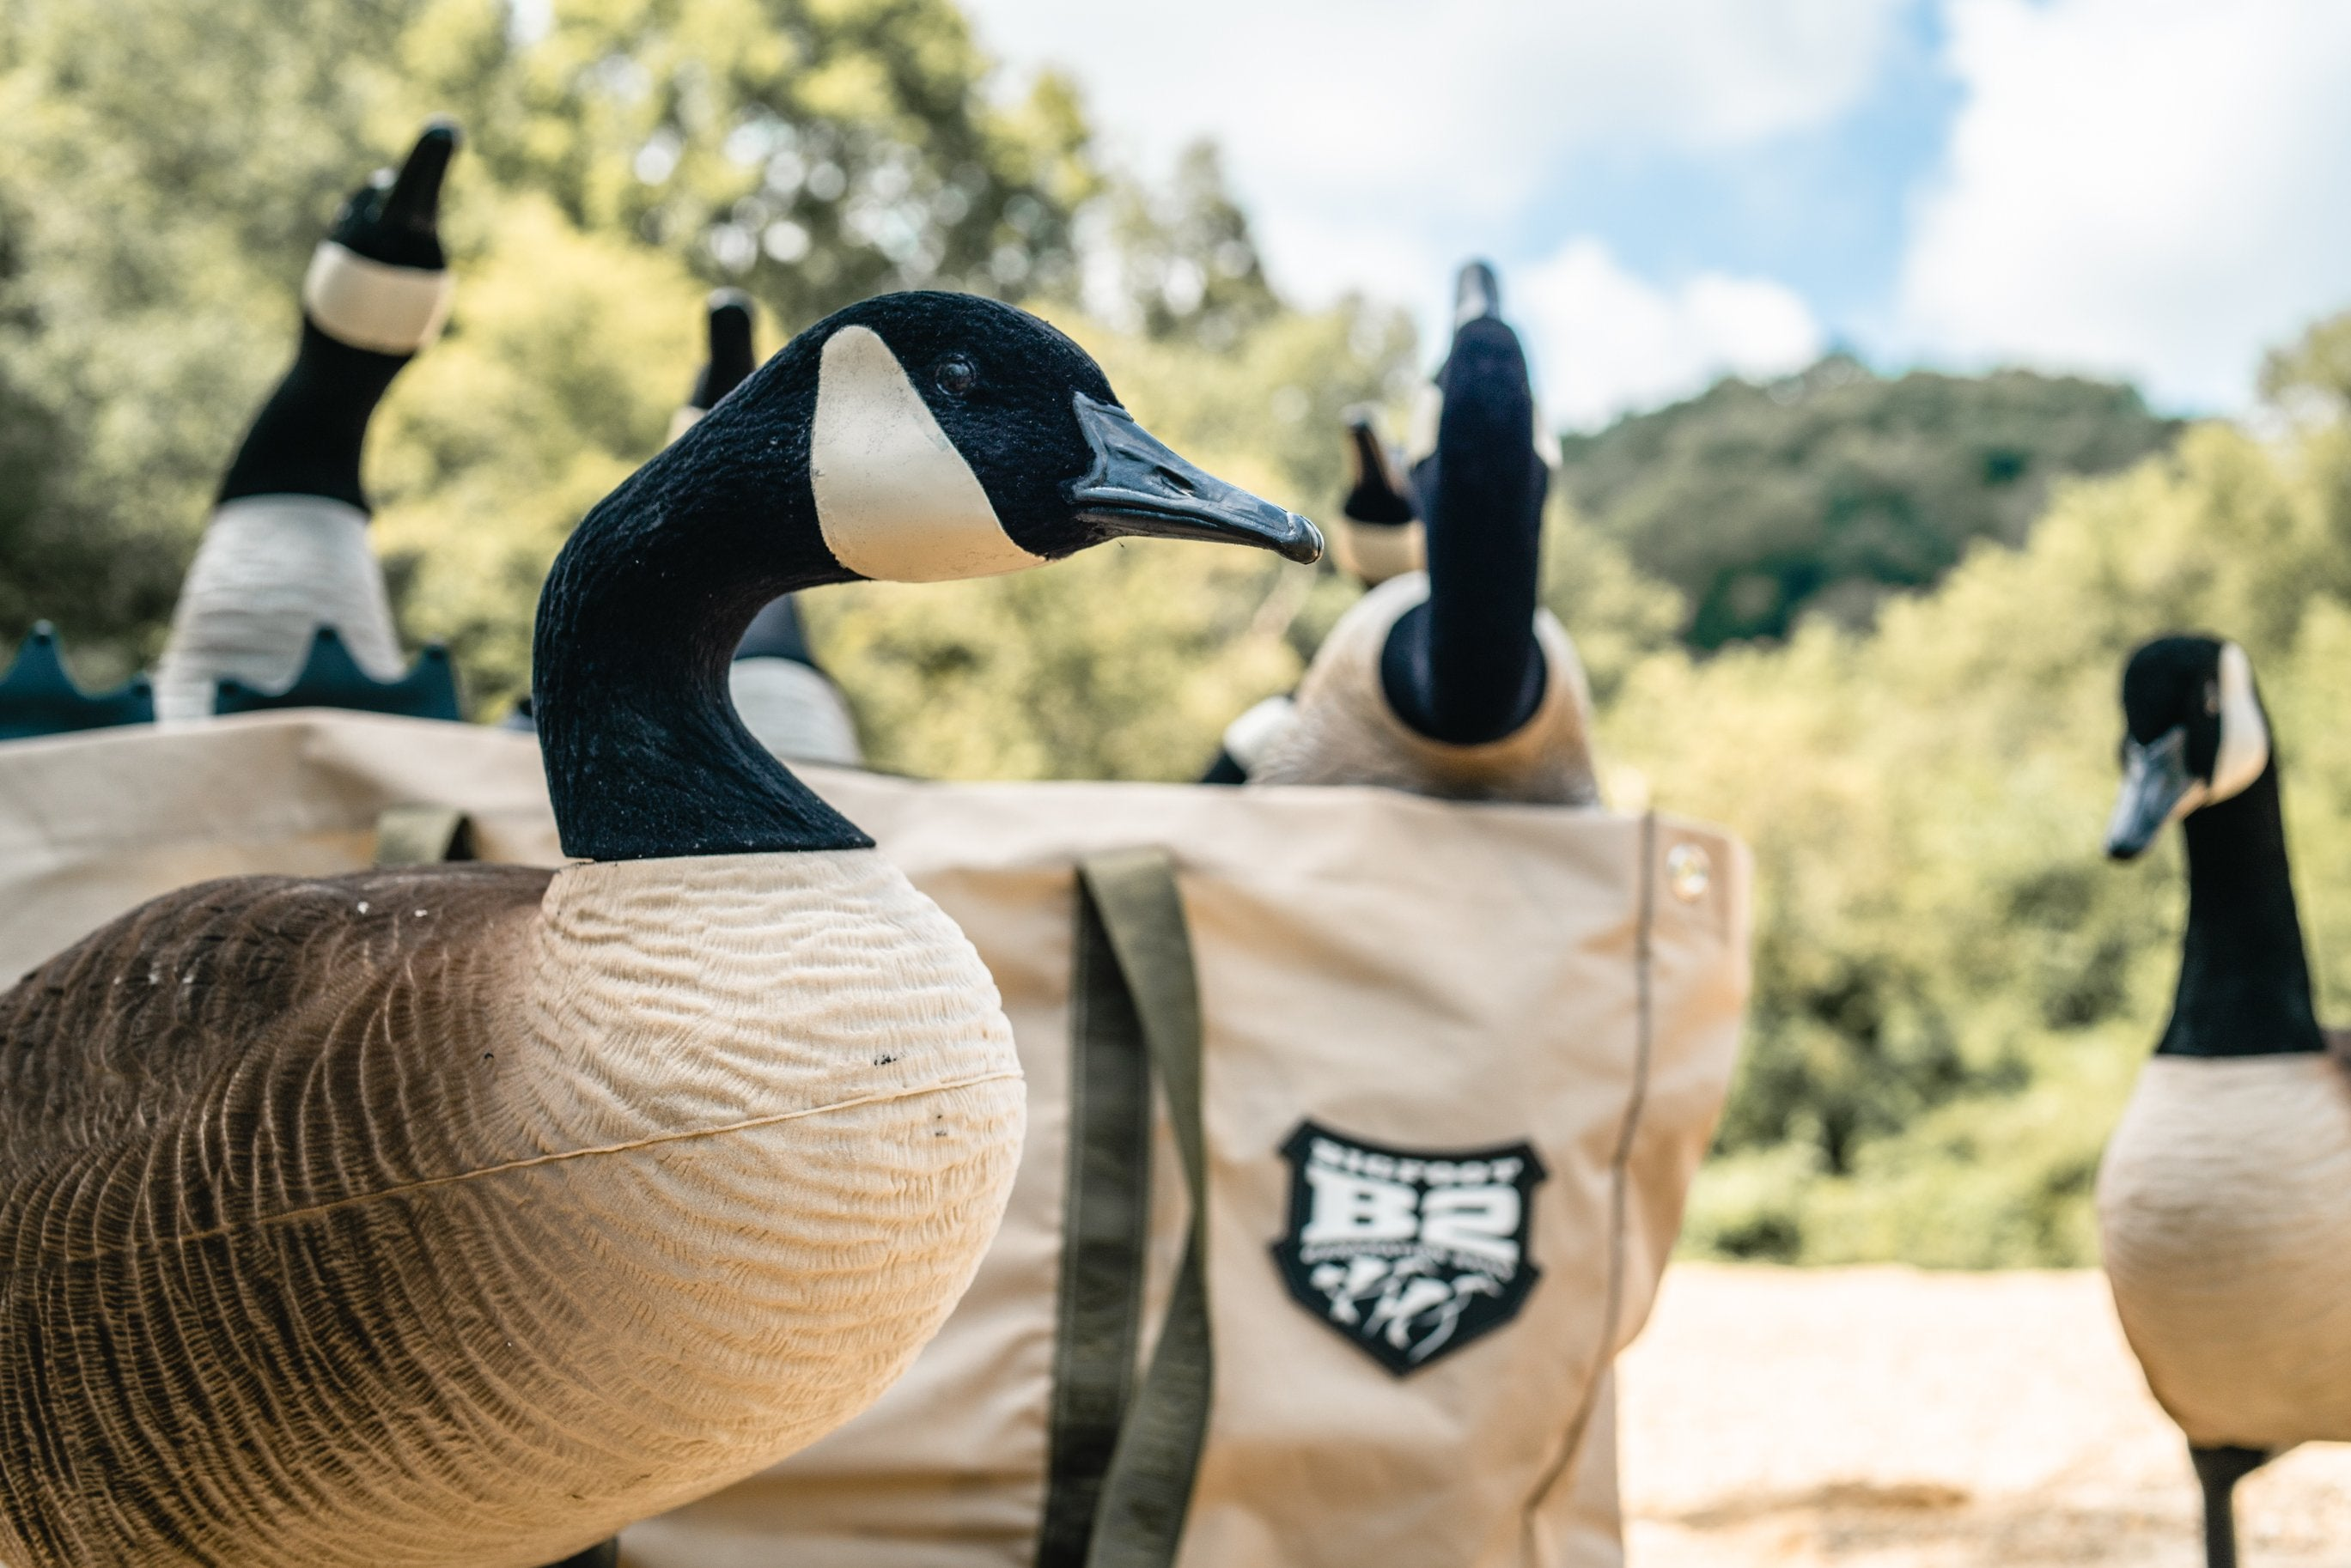 B2™ Fully Flocked Variety Goose Decoys 6 Pack with B2™ 6 Field 6-Slot Decoy Bag